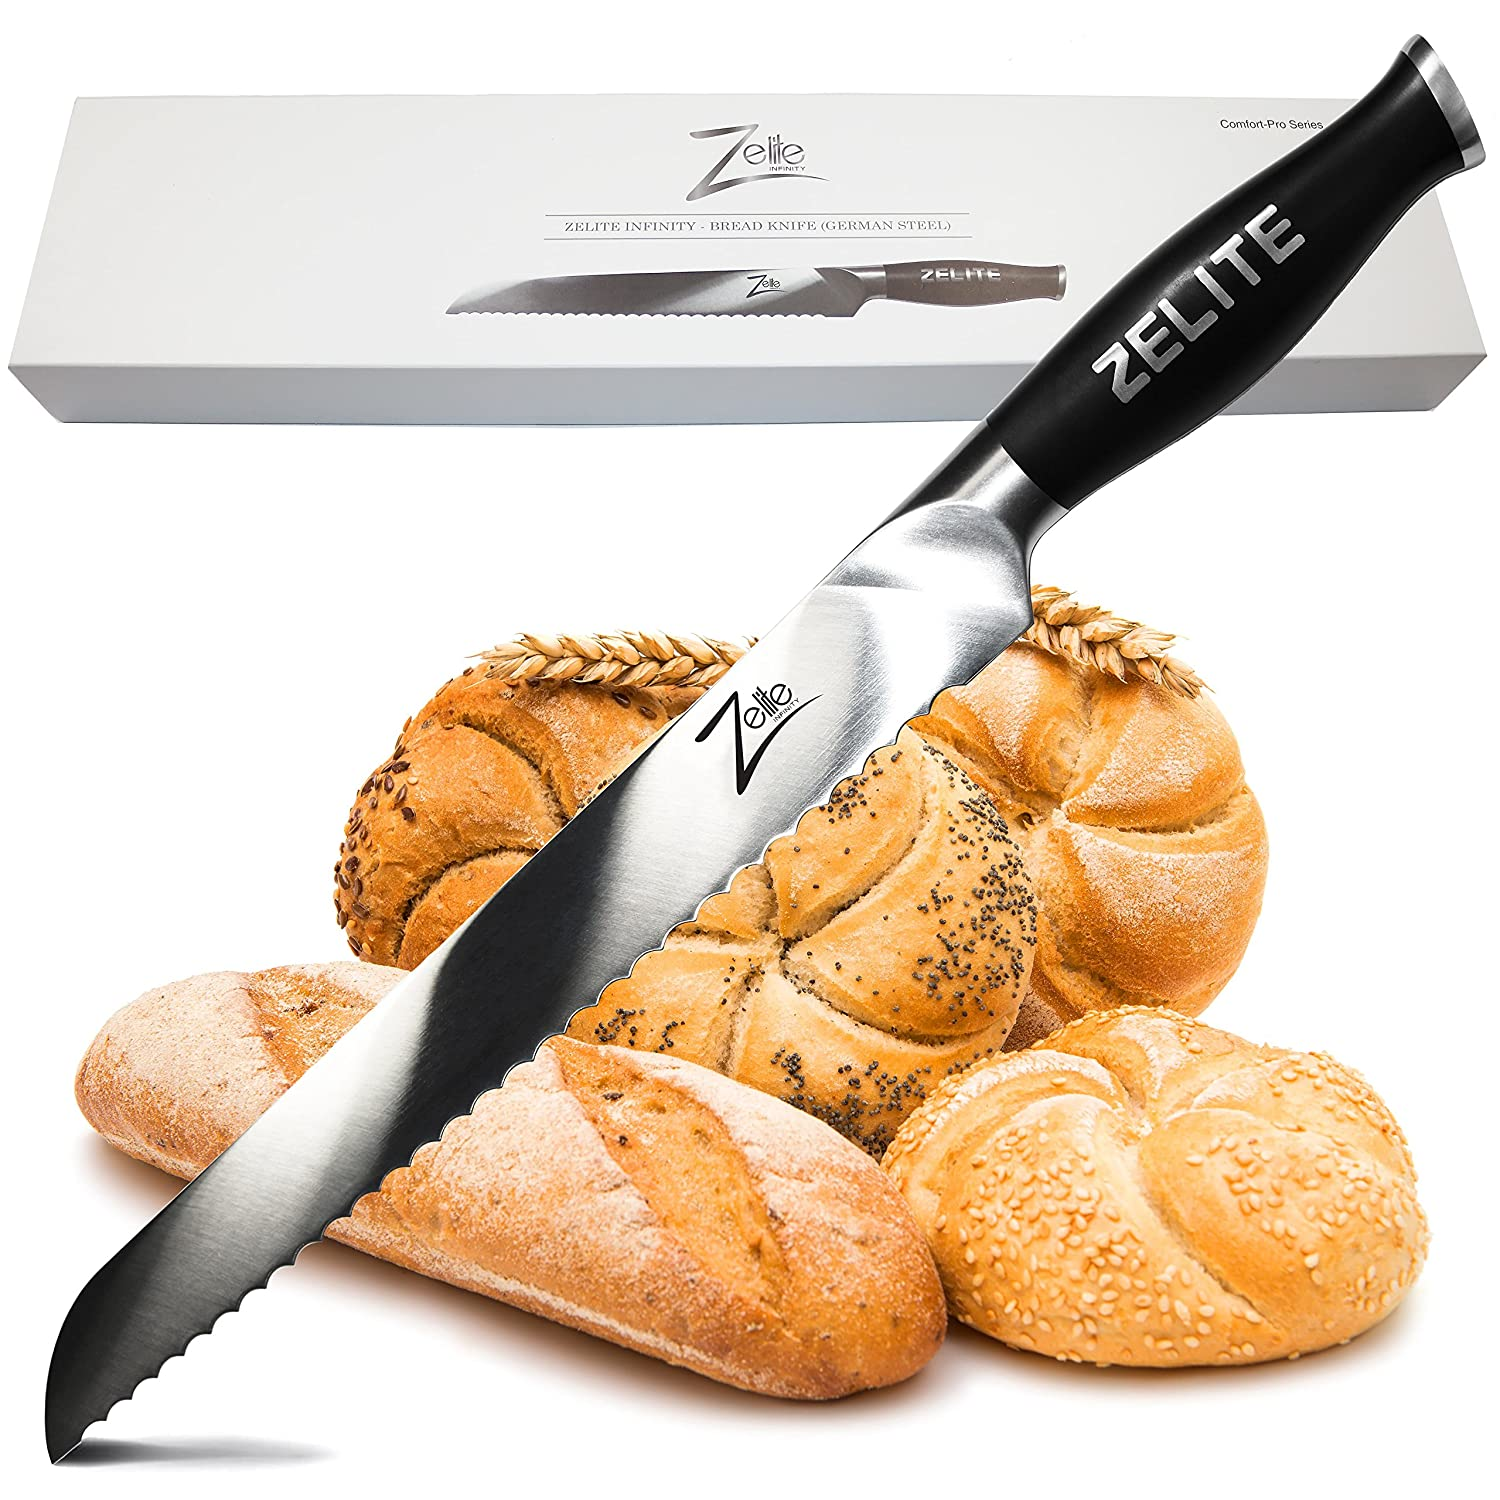 """Zelite Infinity Bread Knife Extra Length - Comfort-Pro Series - High Carbon Stainless Steel Knives X50 Cr MOV 15 >> 10"""" (254mm)"""